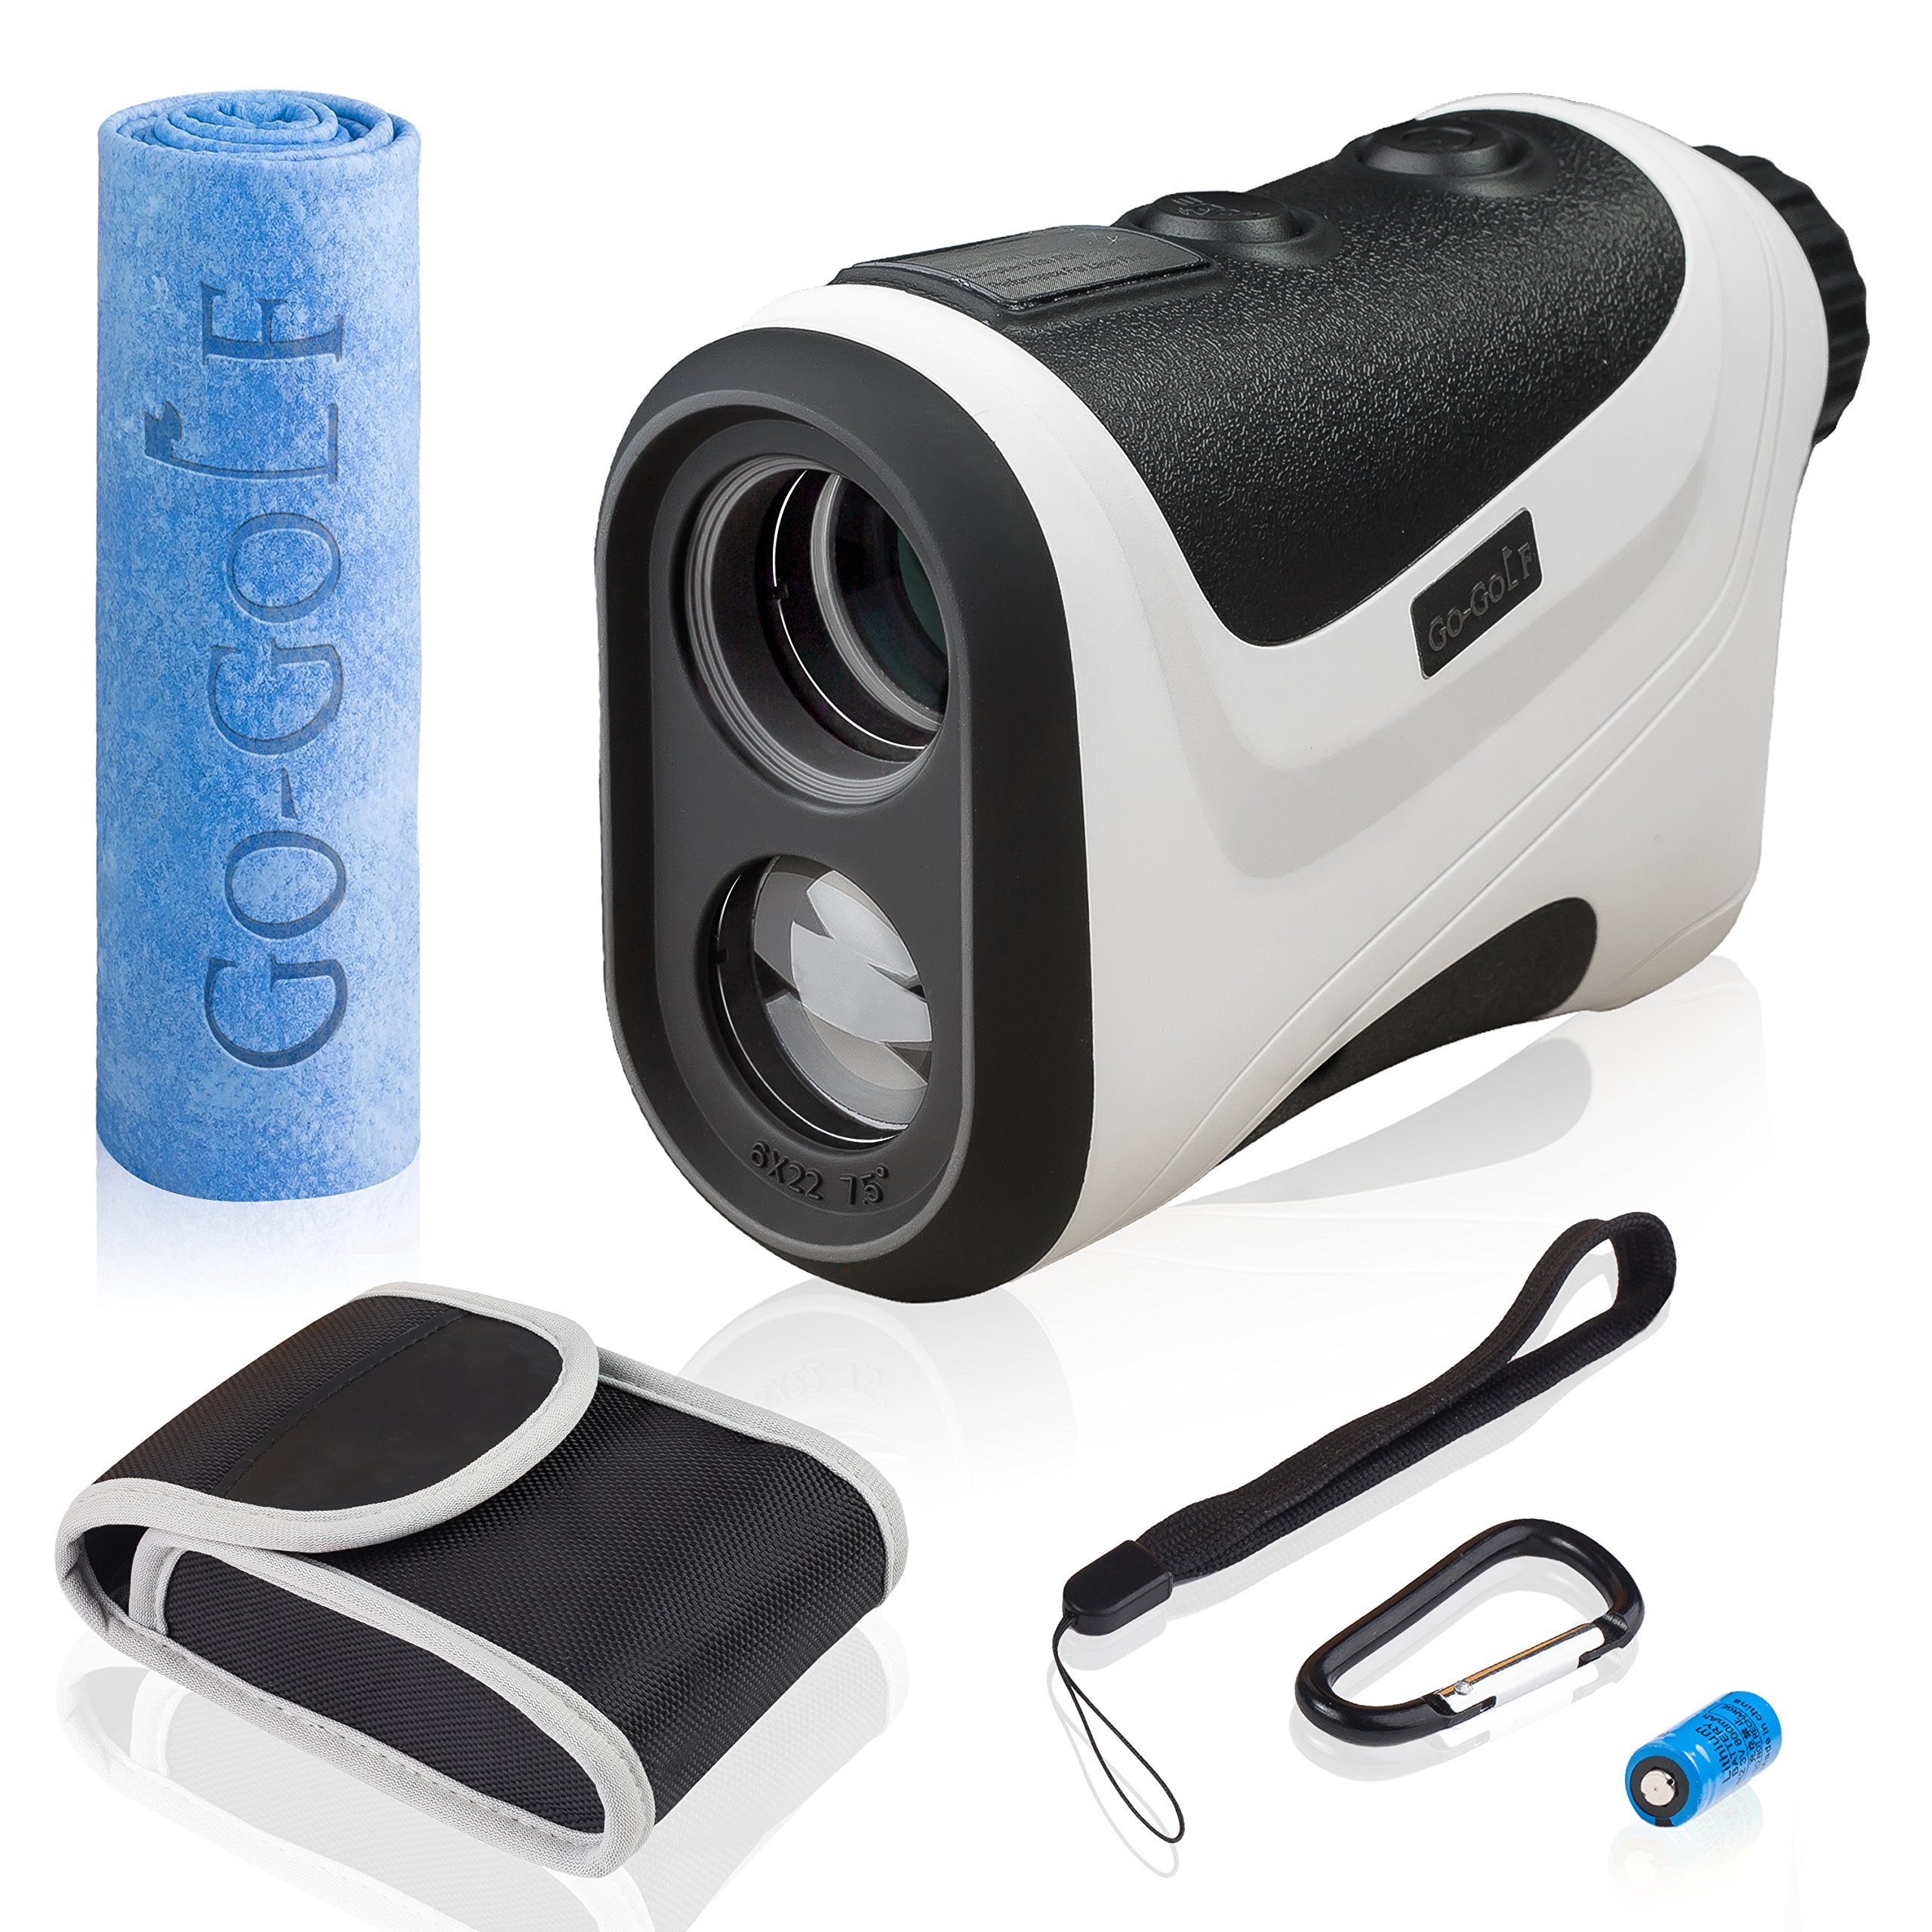 Golf Rangefinder | Laser Range Finder With Pin Sensor & Pulse Tech | Easy To Use, Compact, Accurate & Clear Reading | Golf Binoculars Yardage Rangefinder